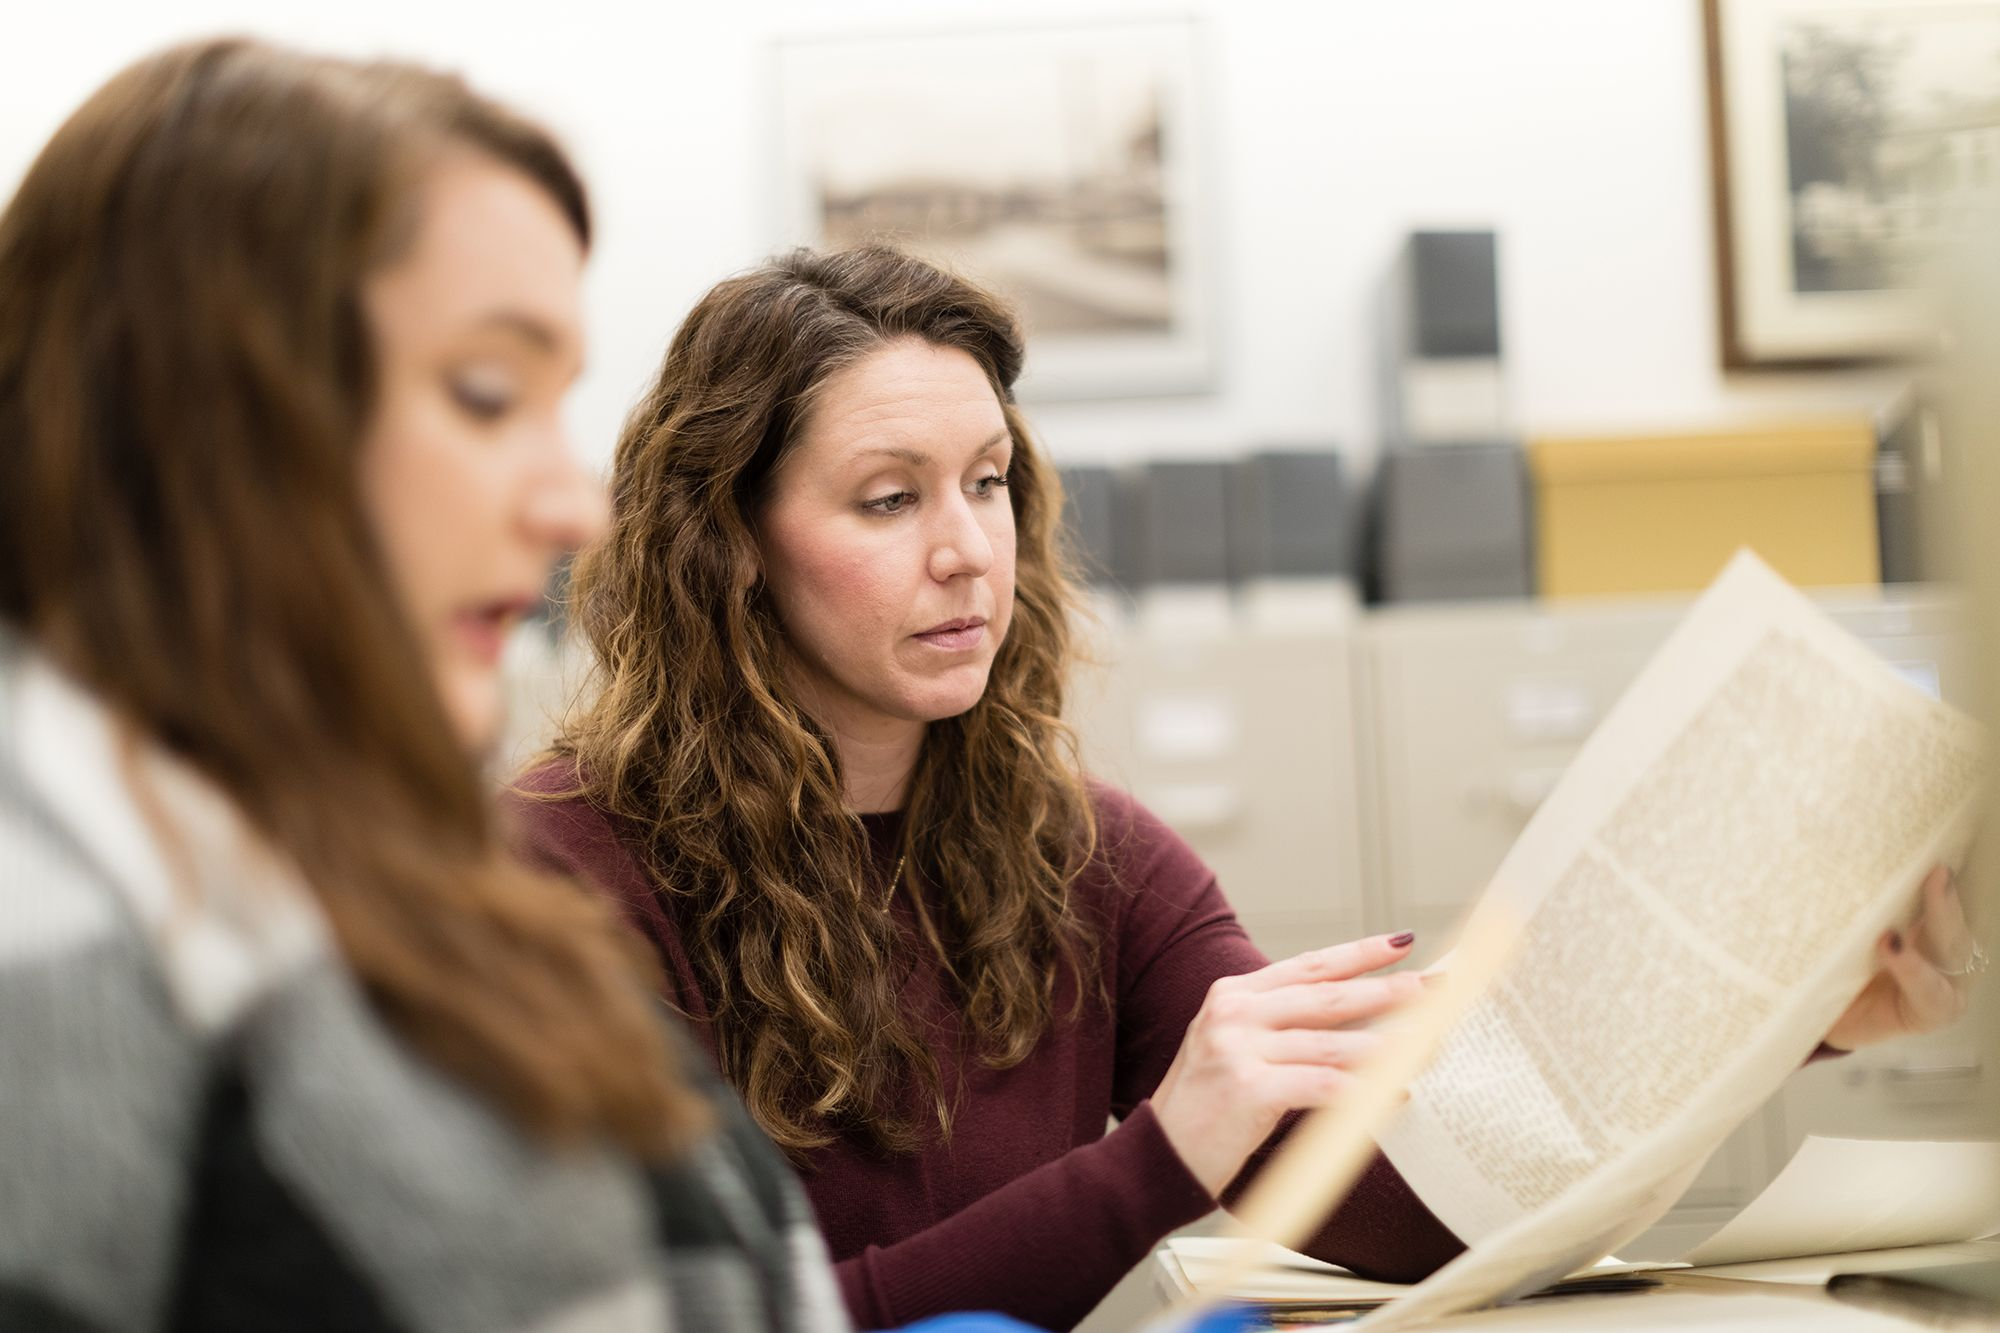 Rachel Walton reading archived papers in a class research project.